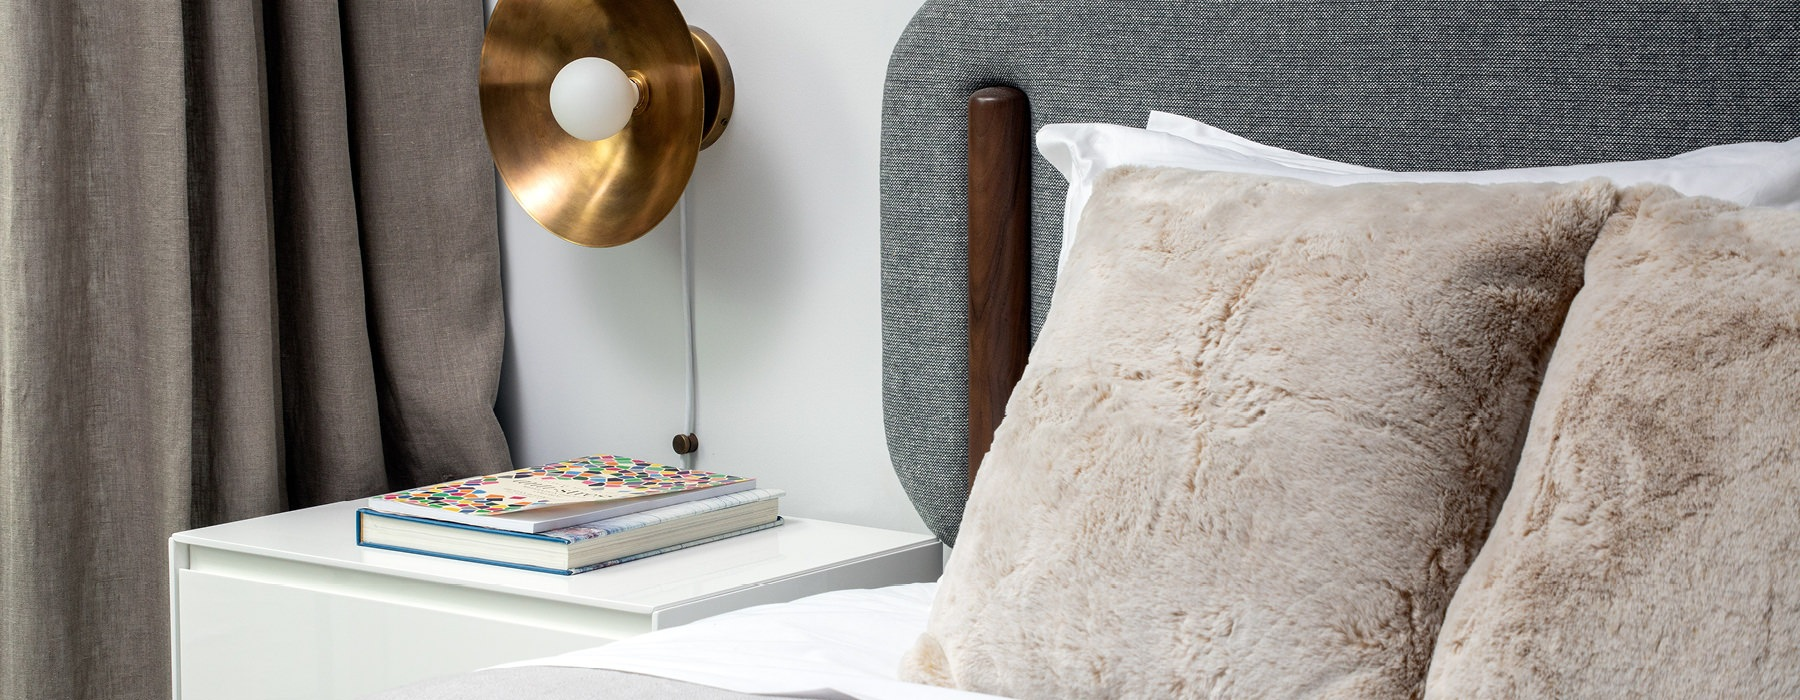 Bedroom with end table